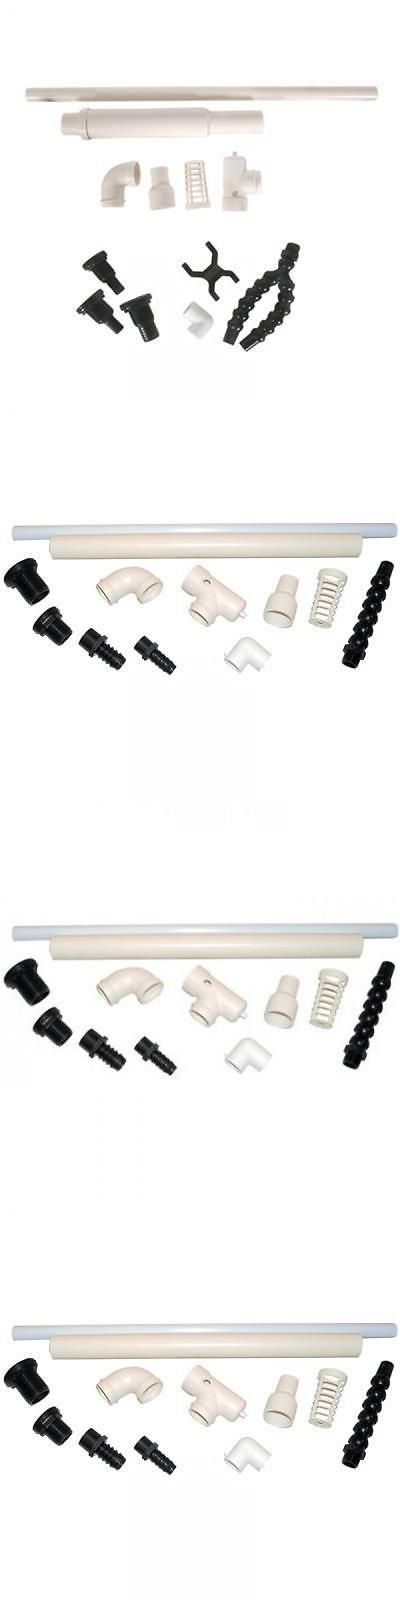 Tubing and Valves 177800: All Glass Aquarium Aag29251 Overflow Accessory New Kit, New, Free Shipping -> BUY IT NOW ONLY: $90.8 on eBay!